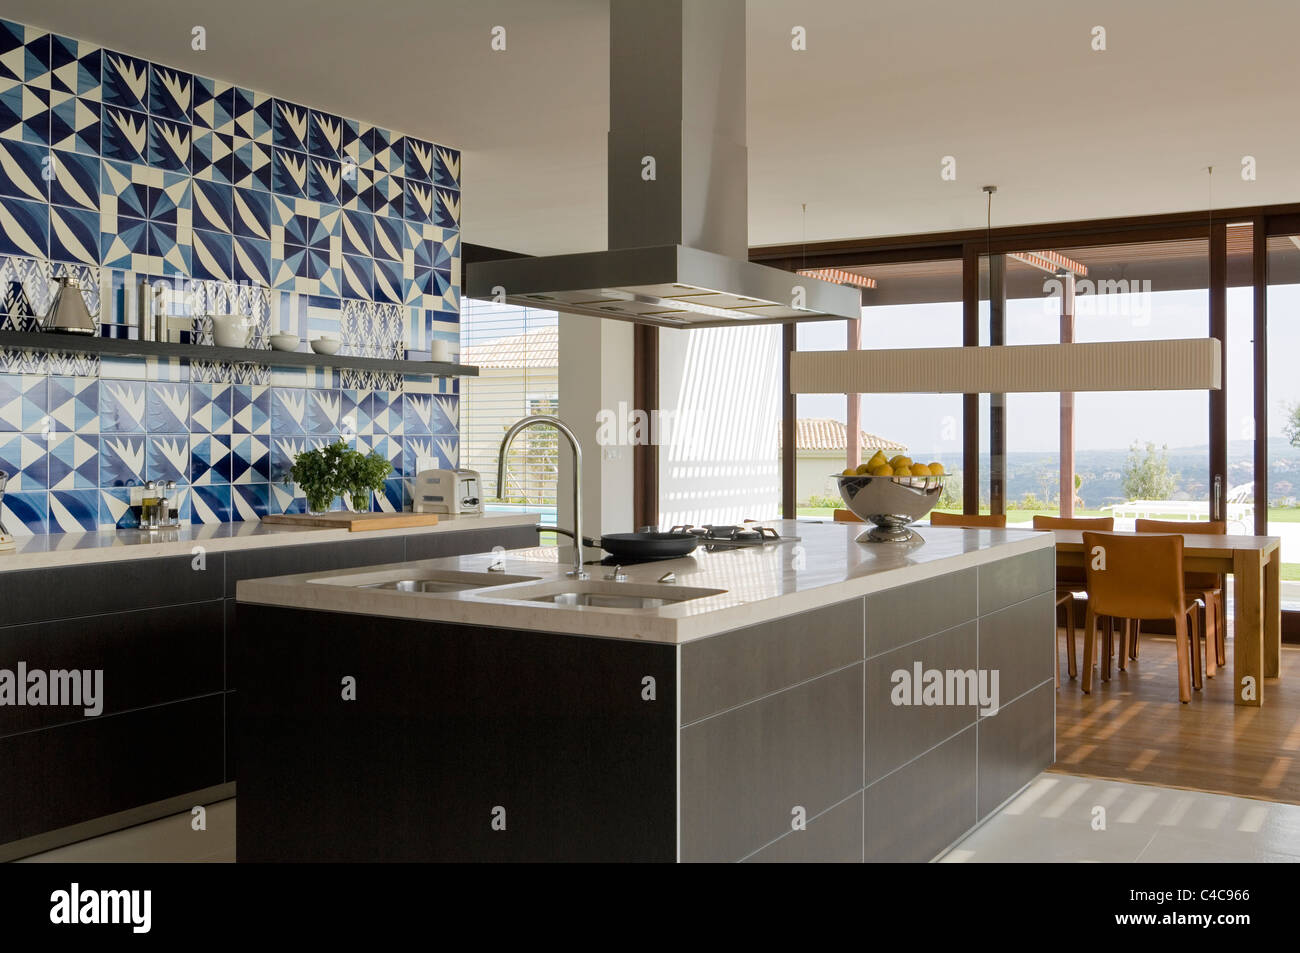 View across modern bulthaup kitchen with bihara stone worktop on to